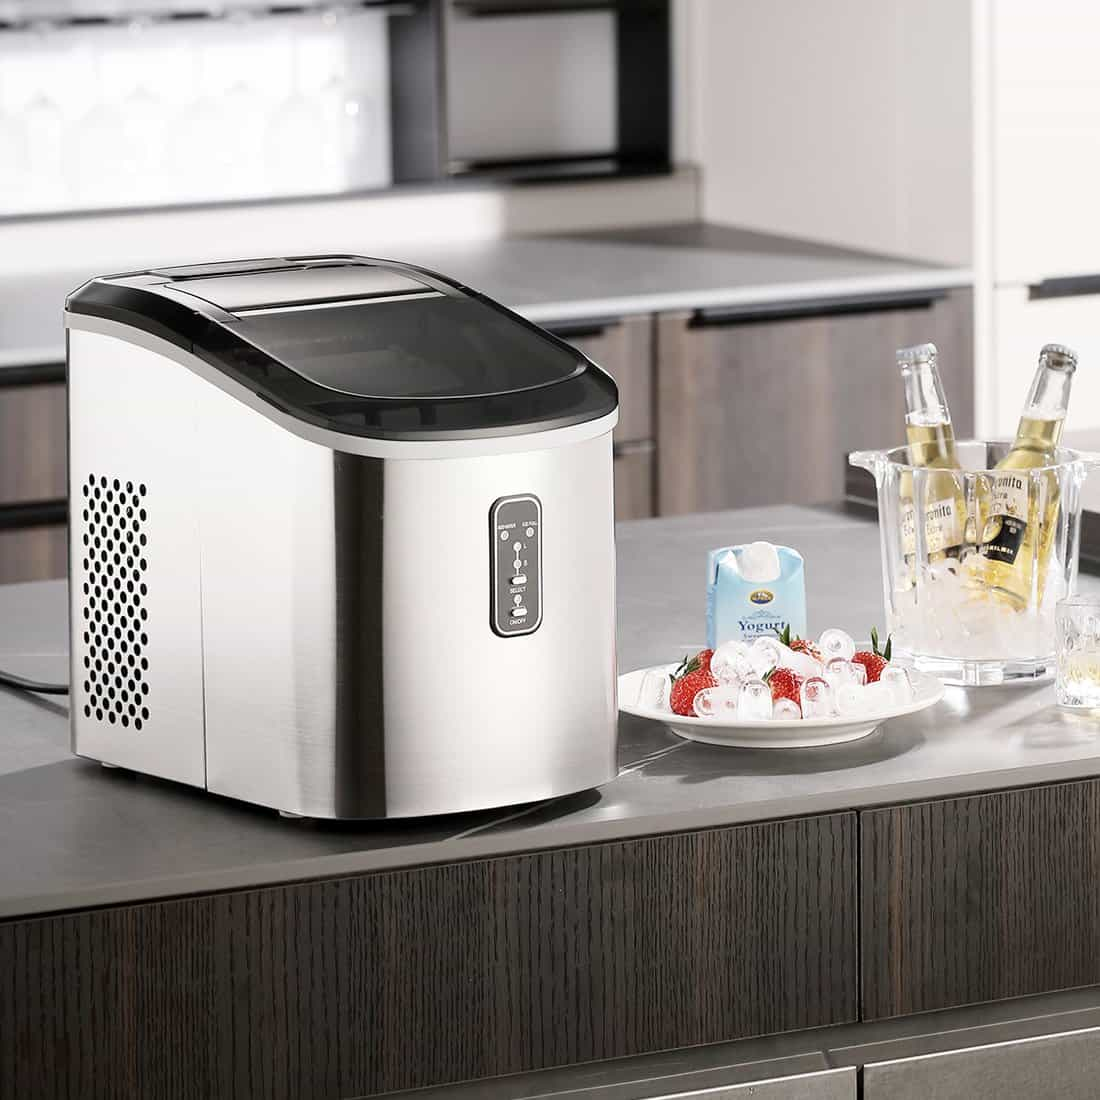 Euhomy Ice Maker Review